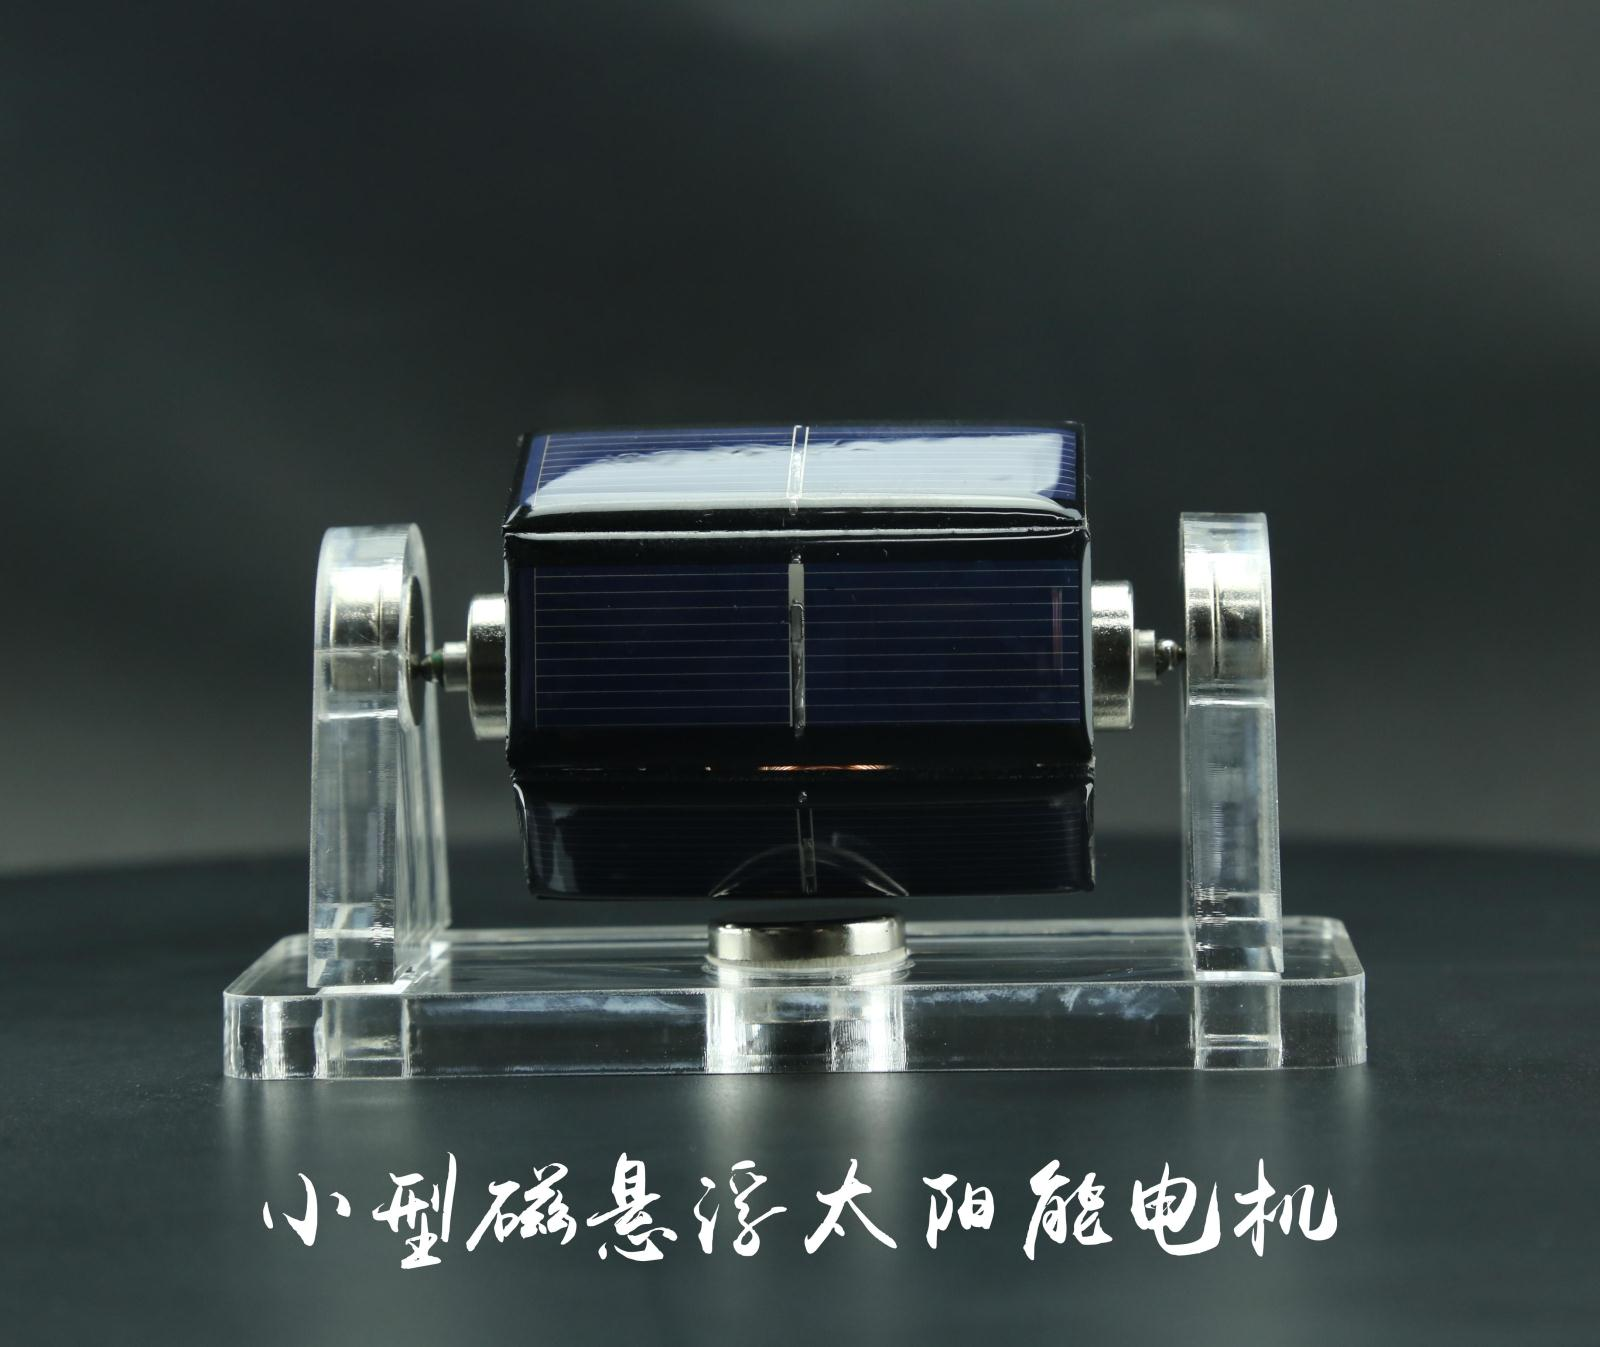 Solar magnetic motor magnetic levitation technology science системный блок jincheng science and technology i54590 gt750 diy